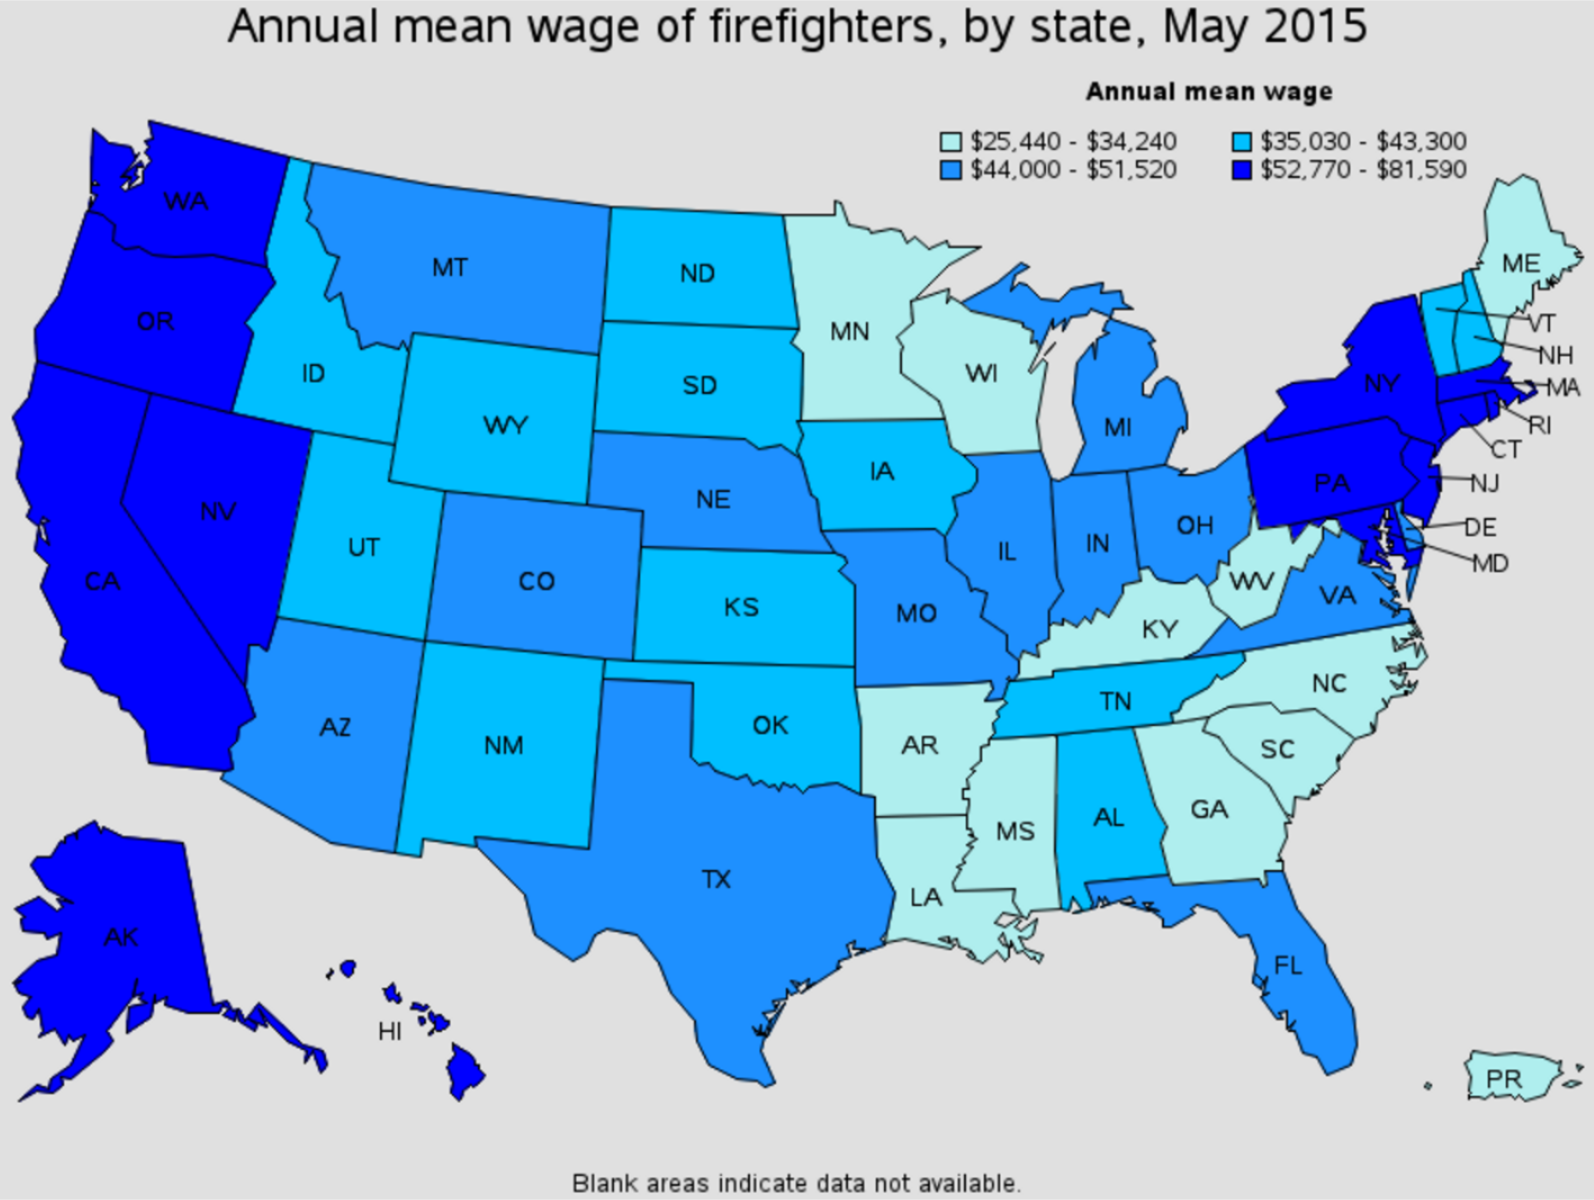 firefighter average salary by state Woonsocket Rhode Island